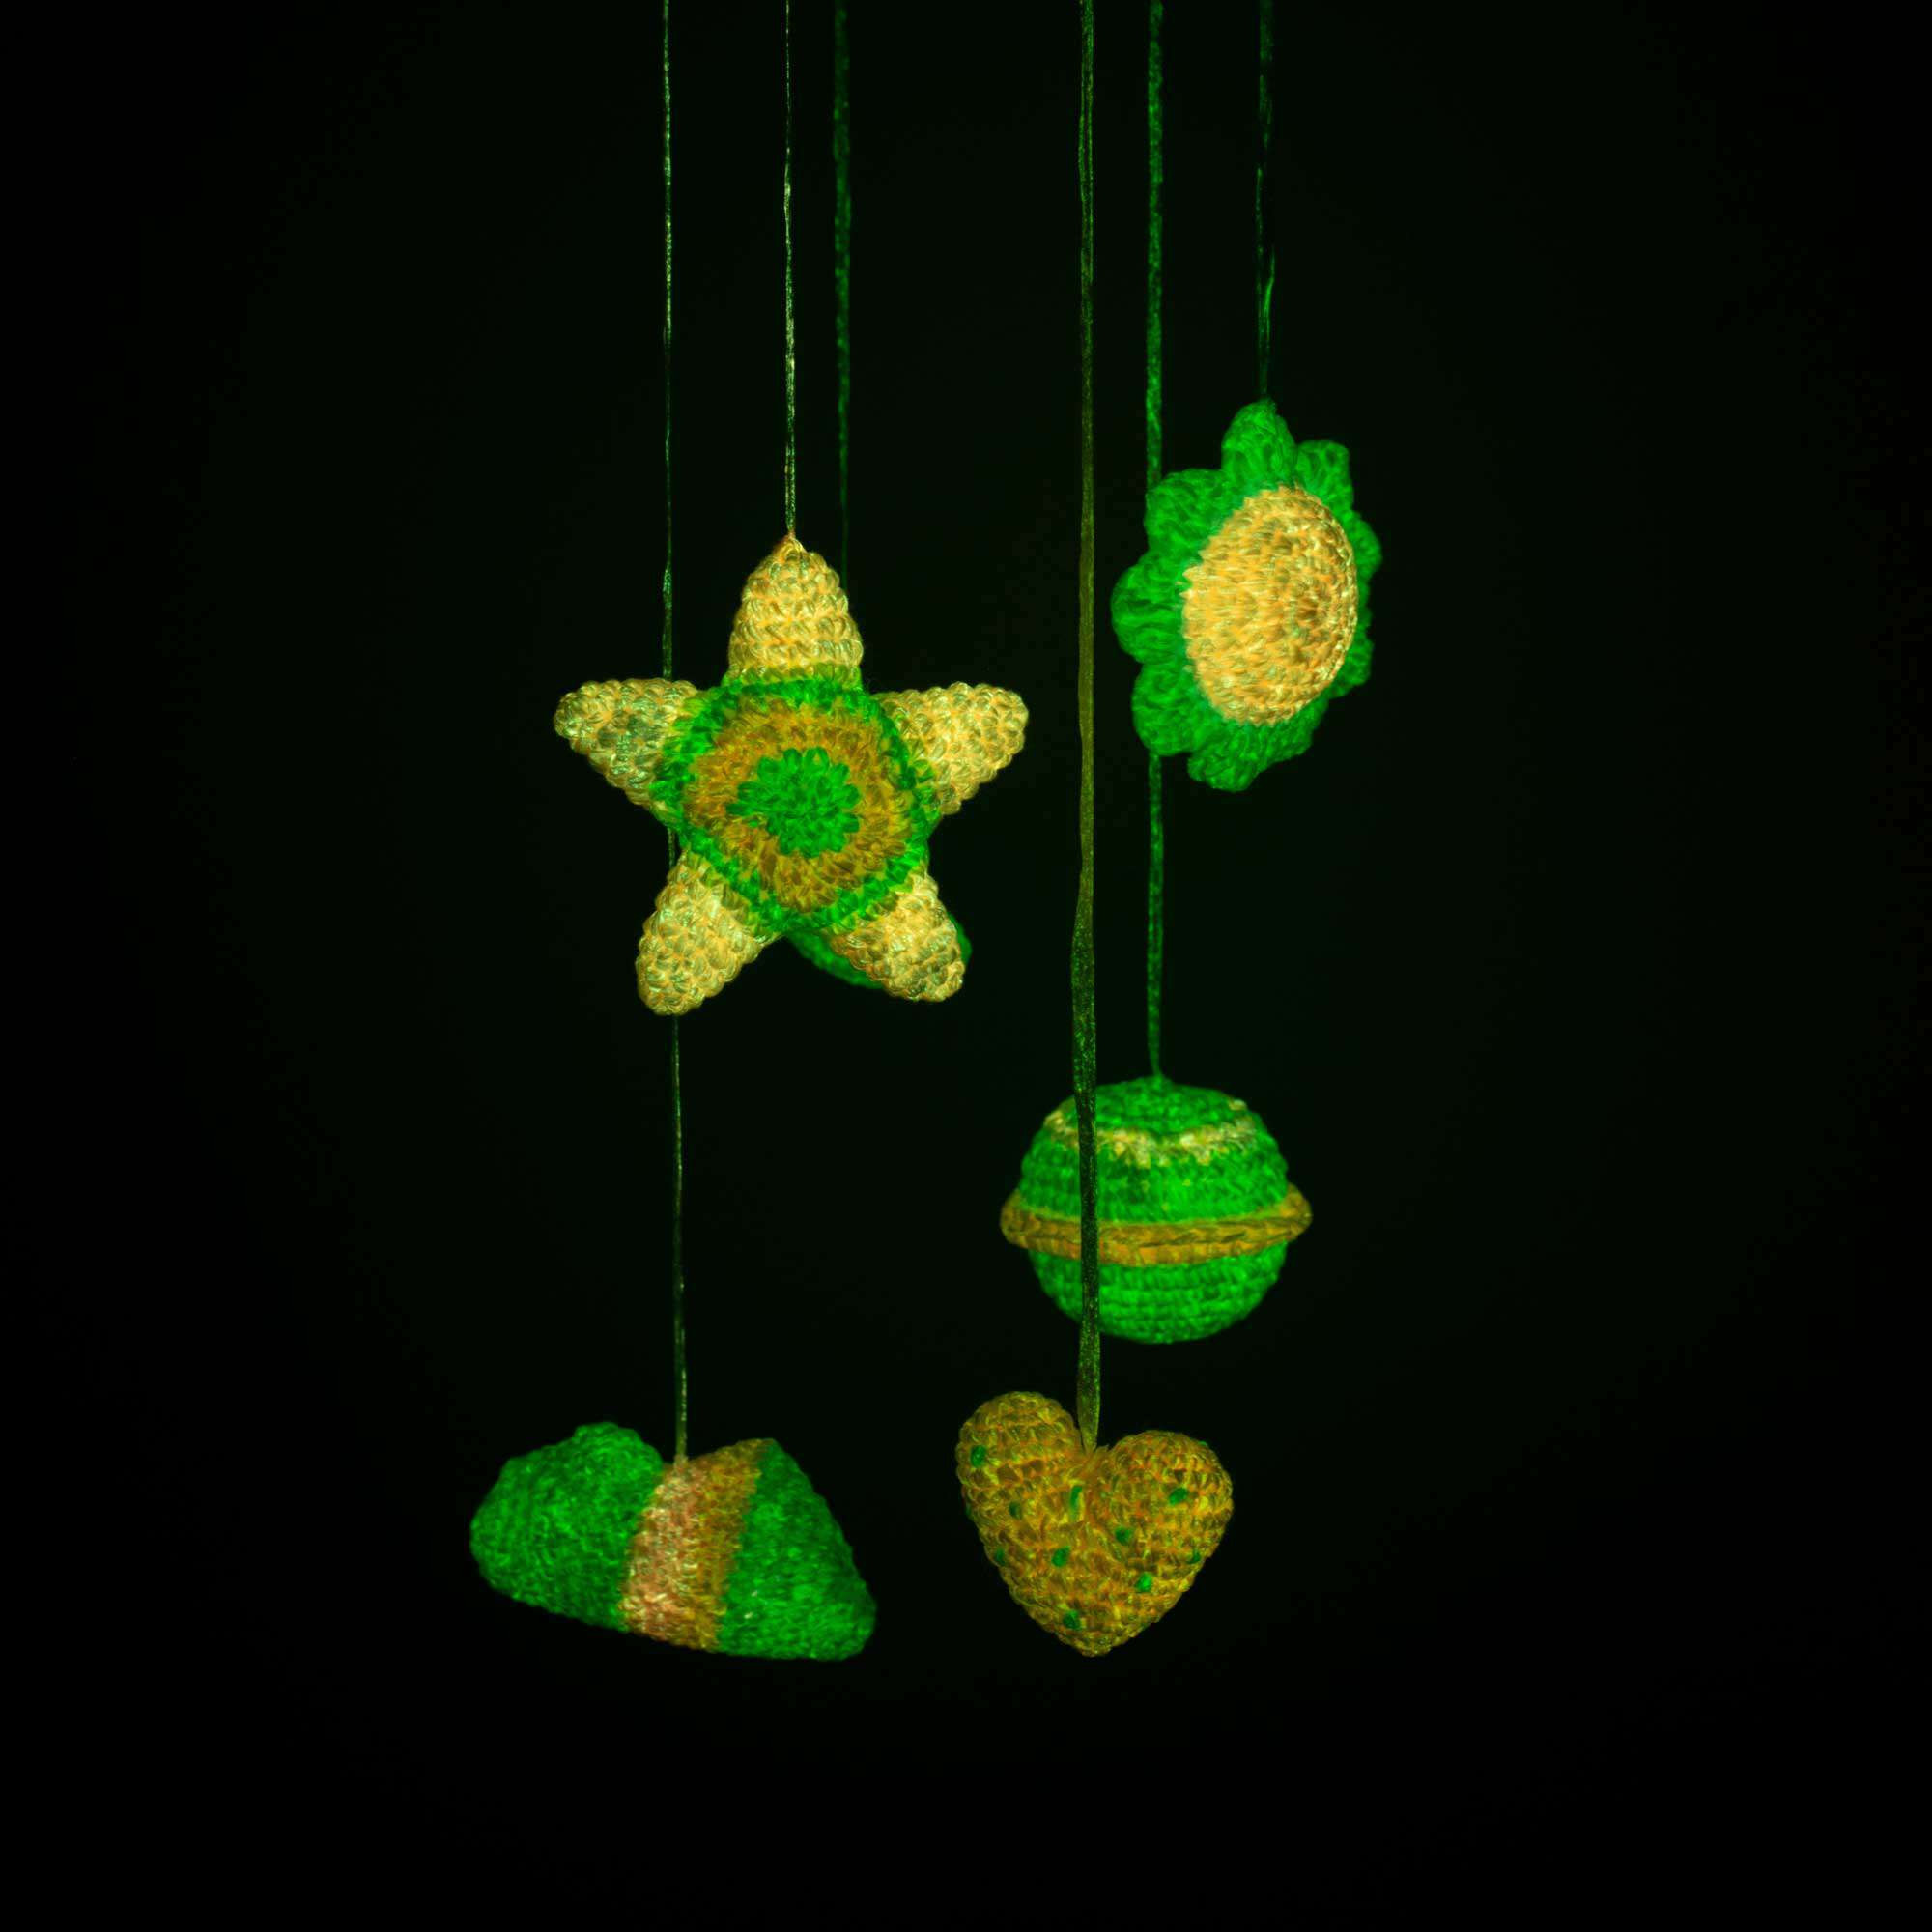 The Glow-in-the-dark Baby's Mobile